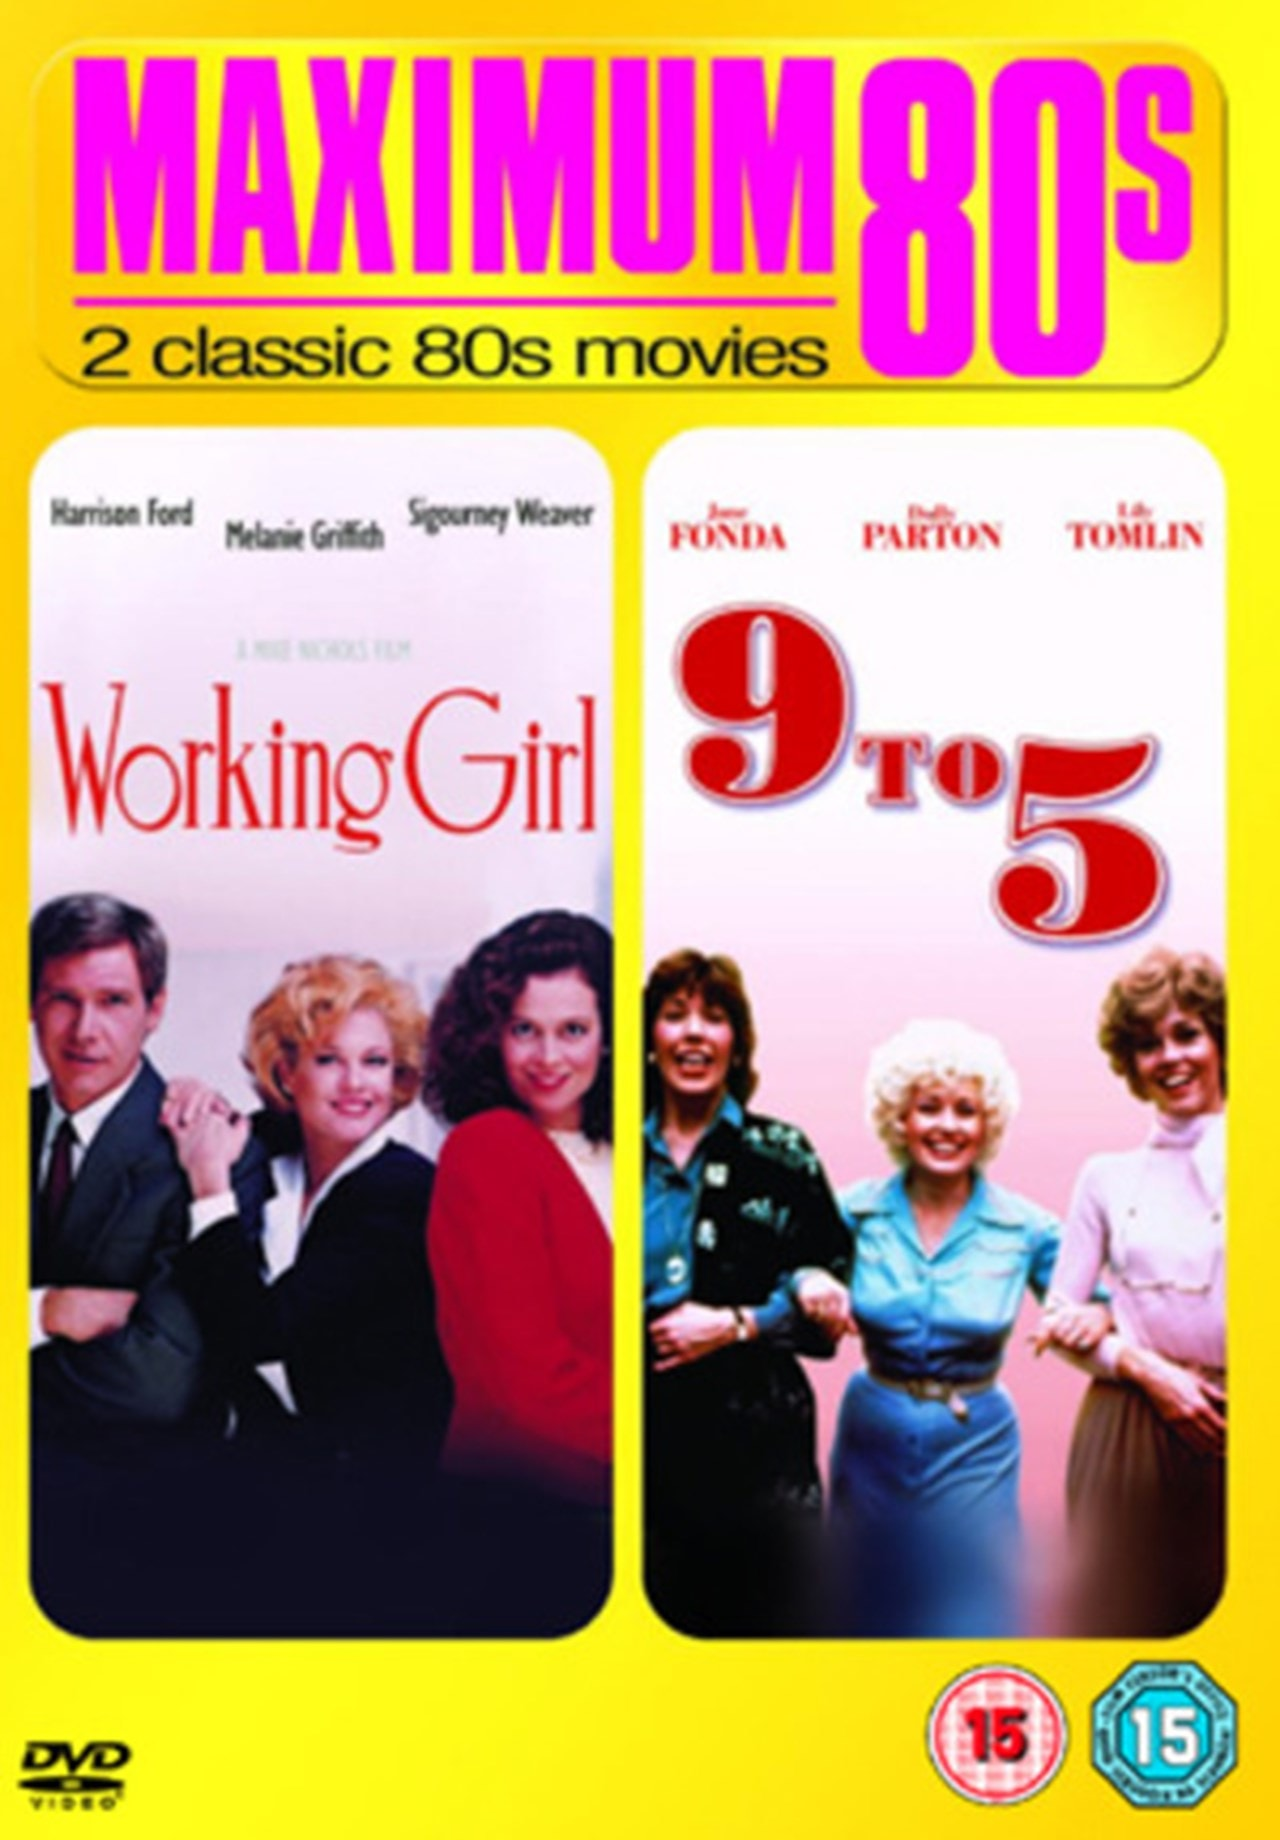 Working Girl/9 to 5 - 1